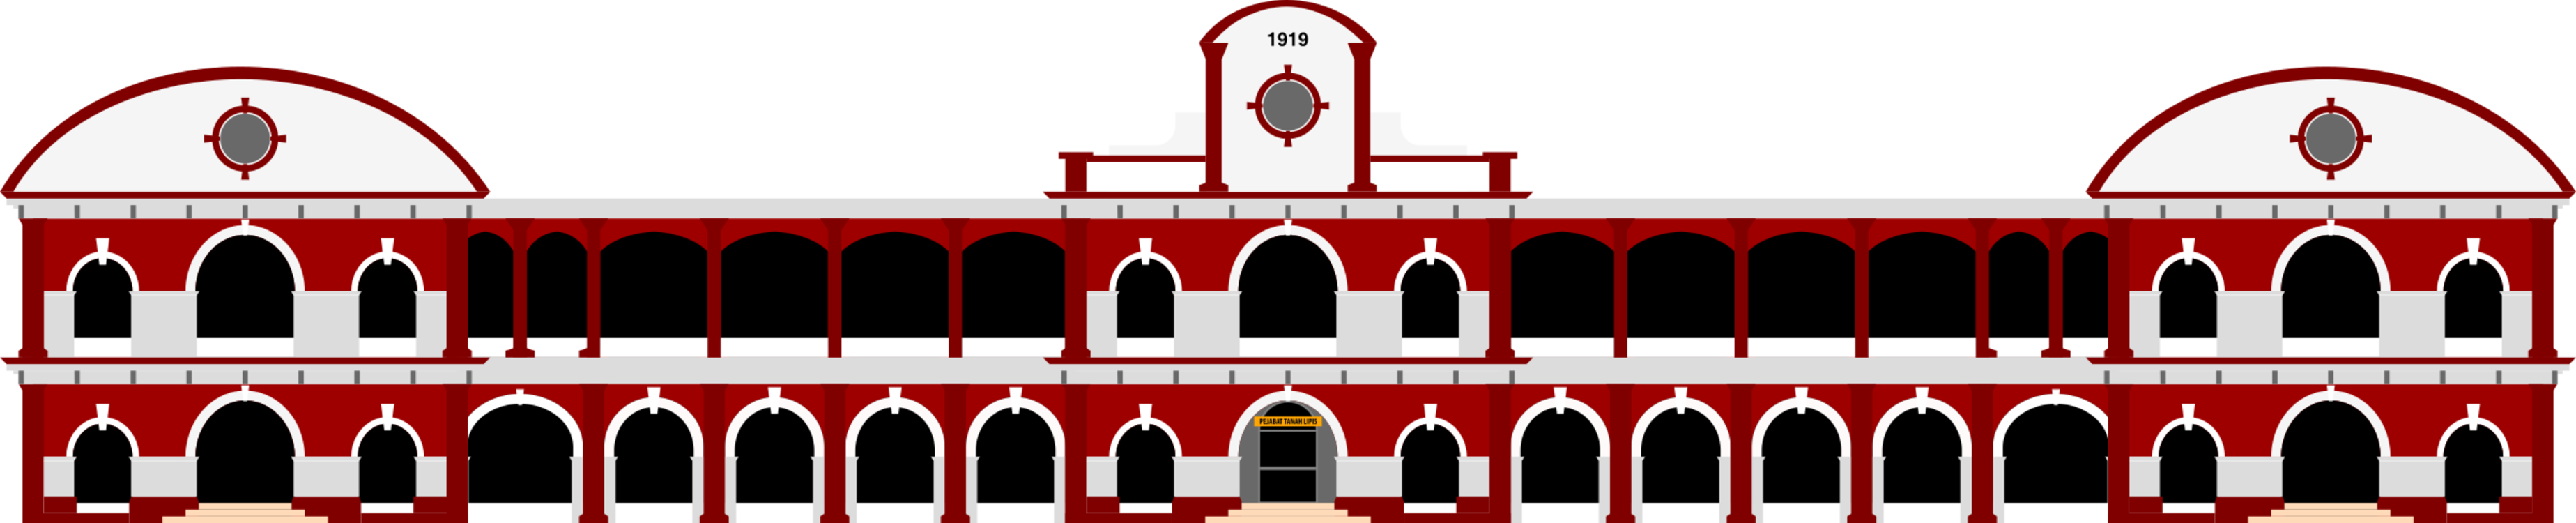 Brand,Computer Icons,Lipis District And Land Office